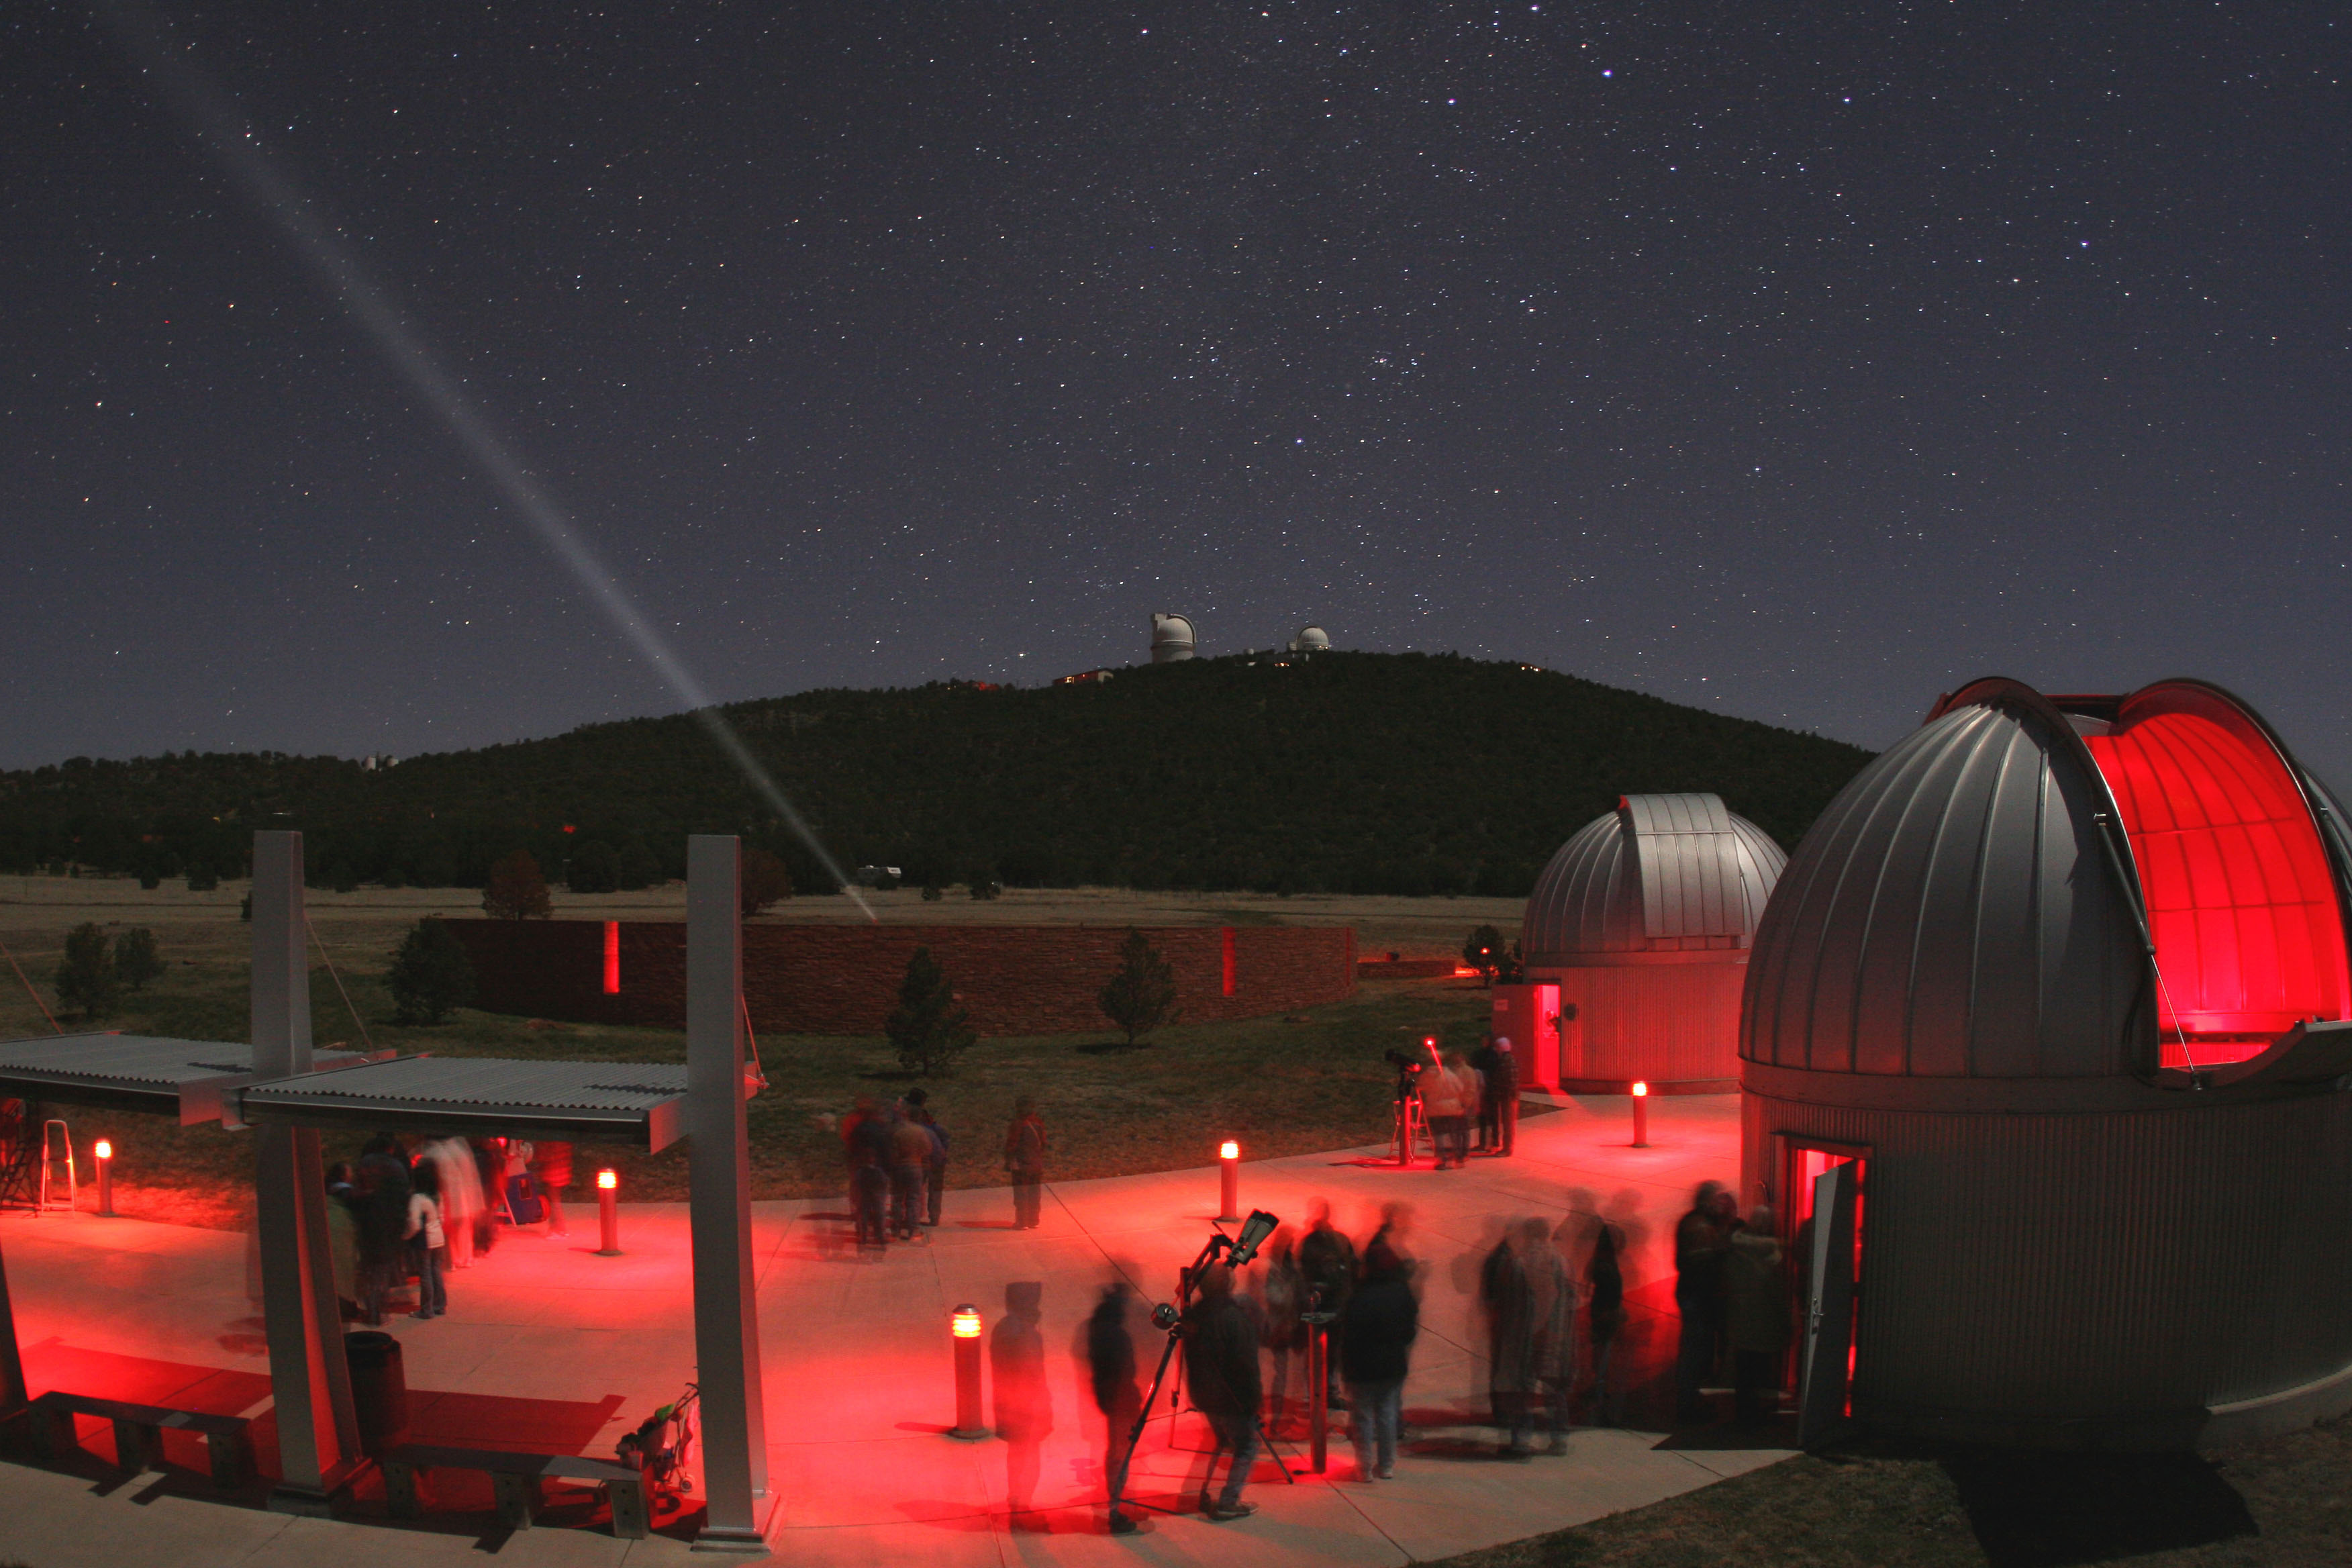 Visitors enjoying a star party at the Frank N. Bash Visitors Center at McDonald